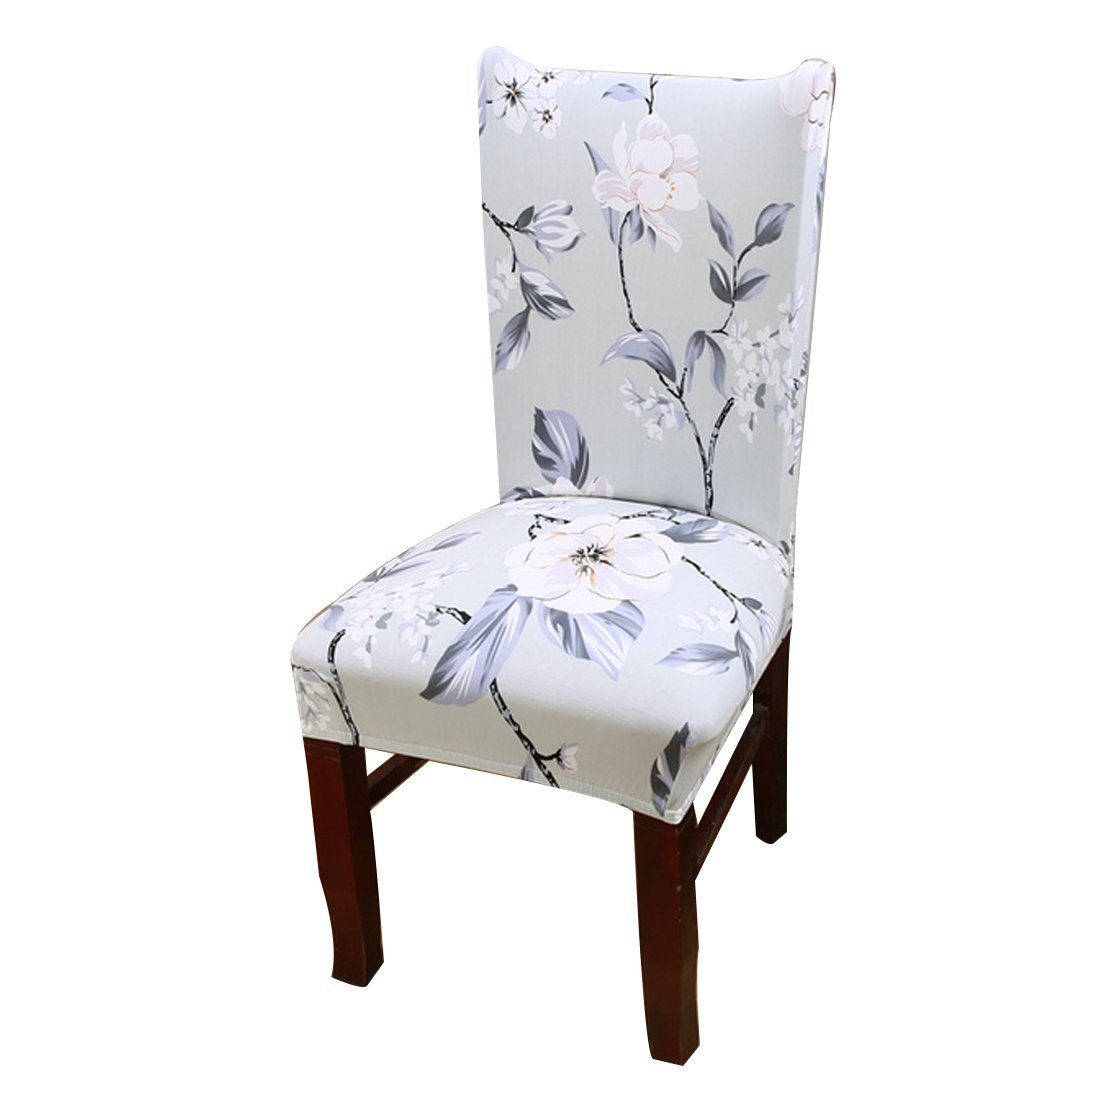 Dining Room Stretch Printed Chair Cover Spandex Lycra Universal Protector Slipcovers Wedding Banquet Party Decor Duoguan